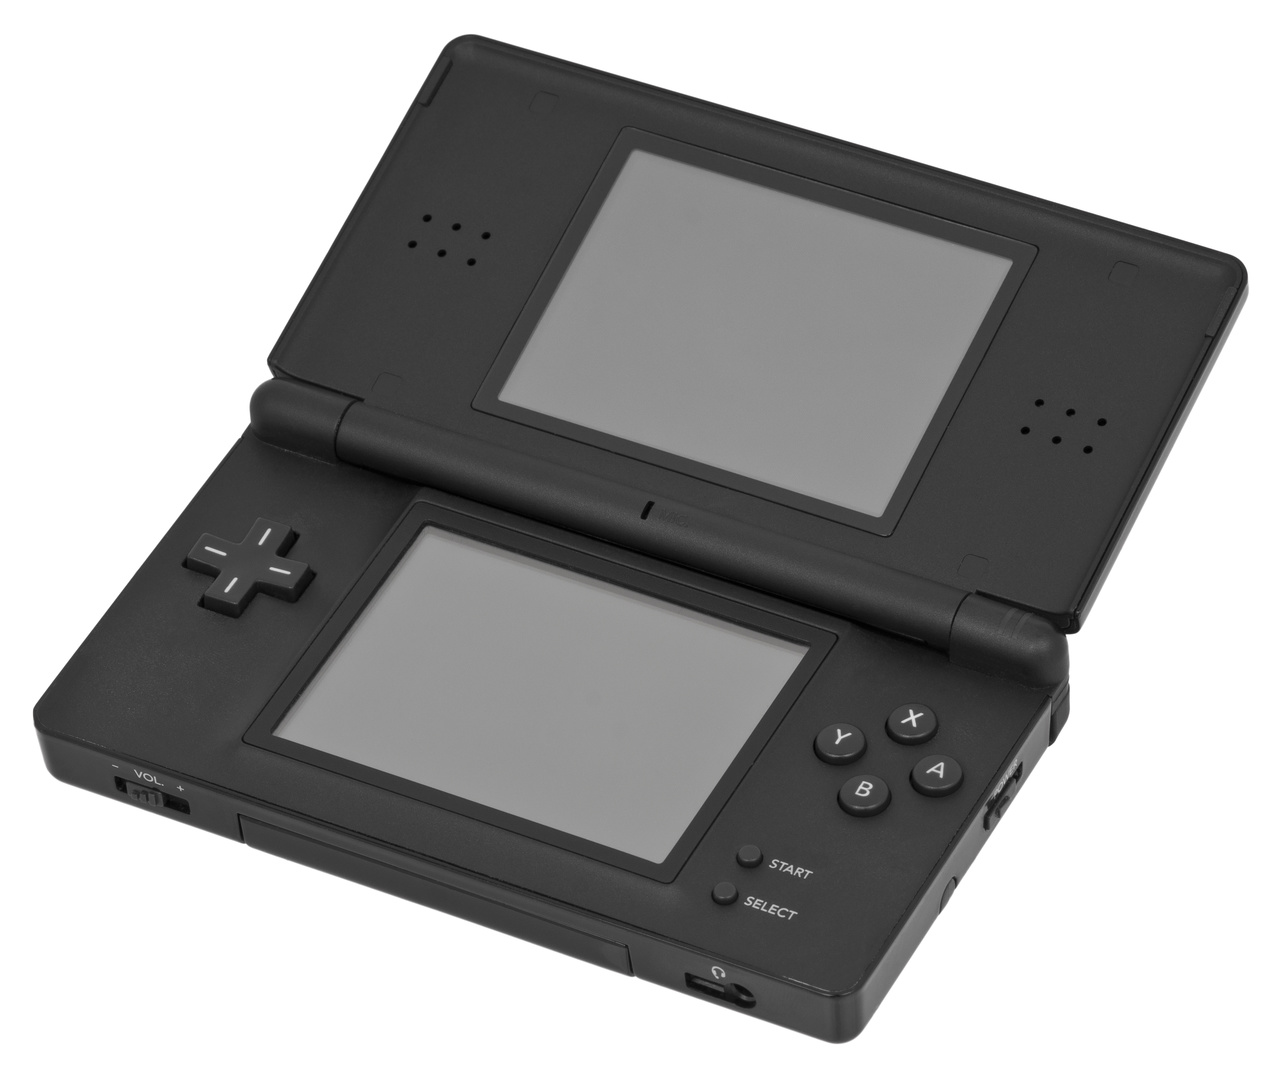 0_1613543682920_Nintendo-DS-Lite-Black-Open-1280.jpg